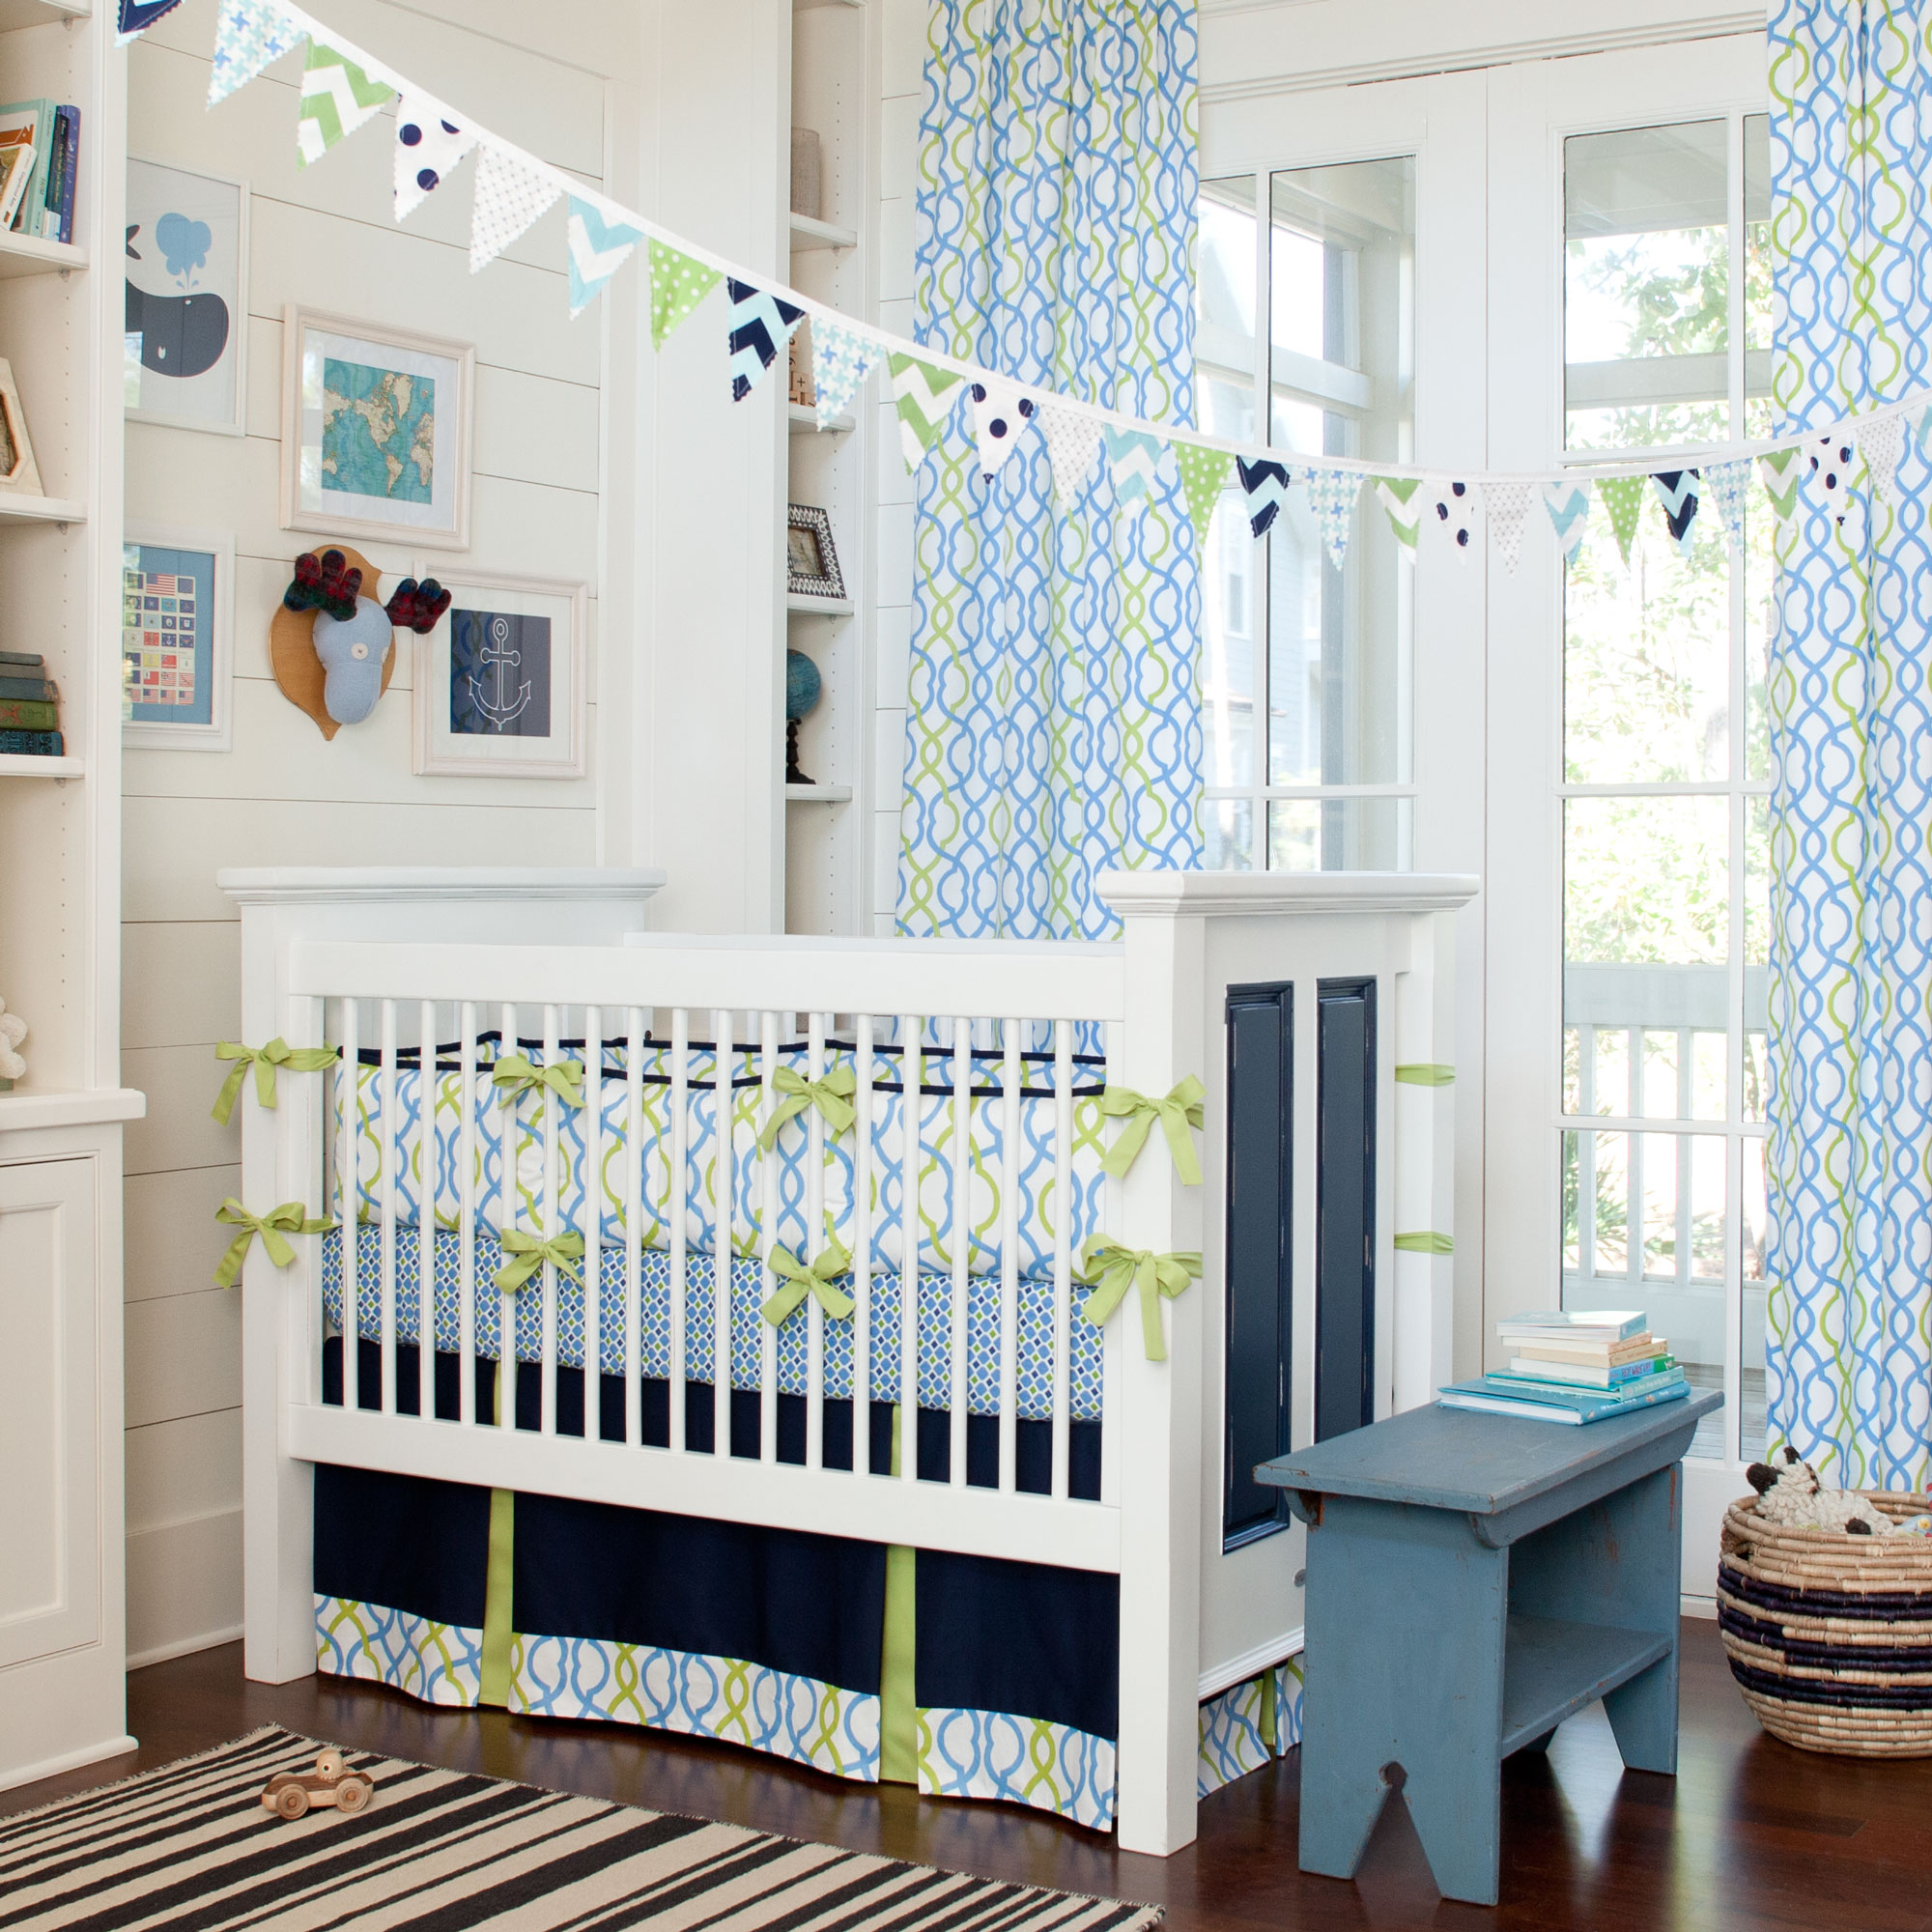 Perfect The Minimalist Design Of This Frame Has Exposed The Dotty And Striped  Pattern Of The Baby Crib Bedding Sets Which Can Improve The Modern Look Of  This Baby ...